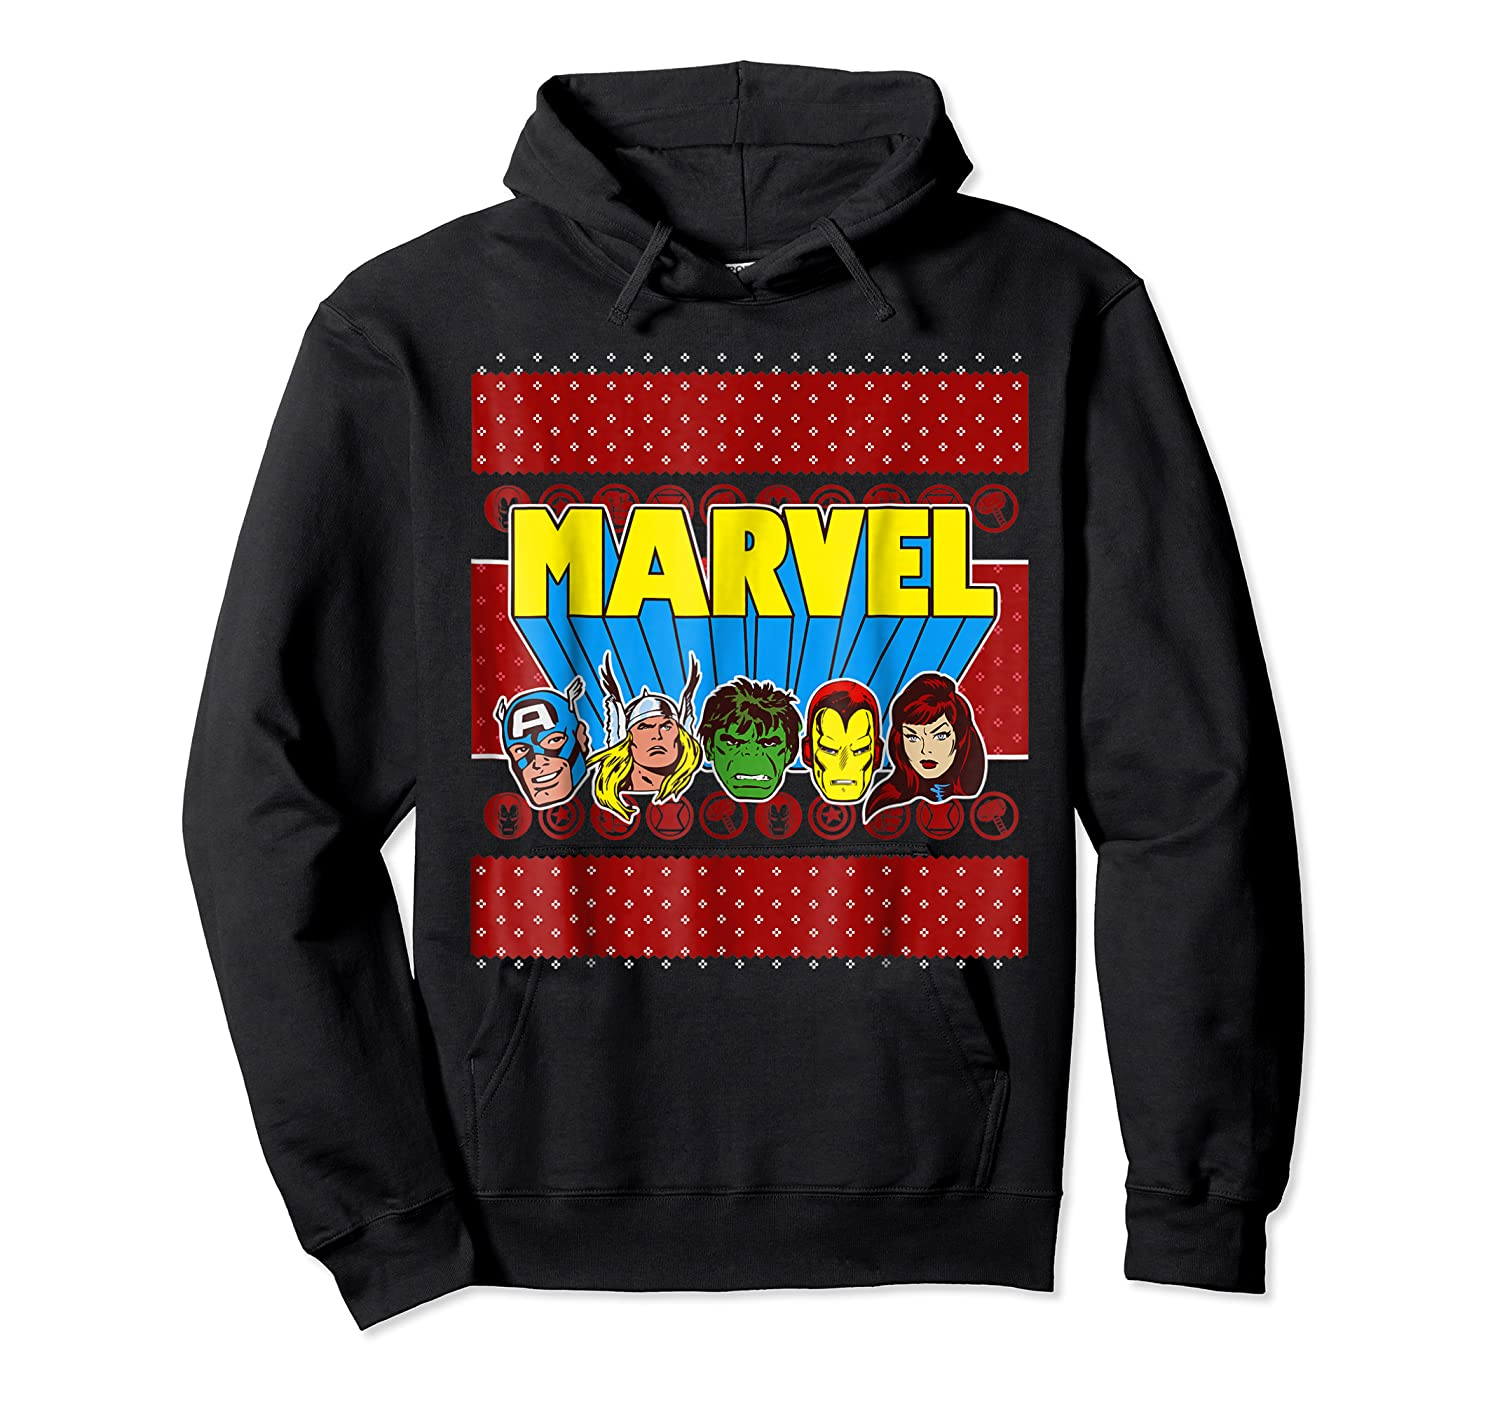 Avengers Classic Ugly Christmas Sweater Shirts Unisex Pullover Hoodie